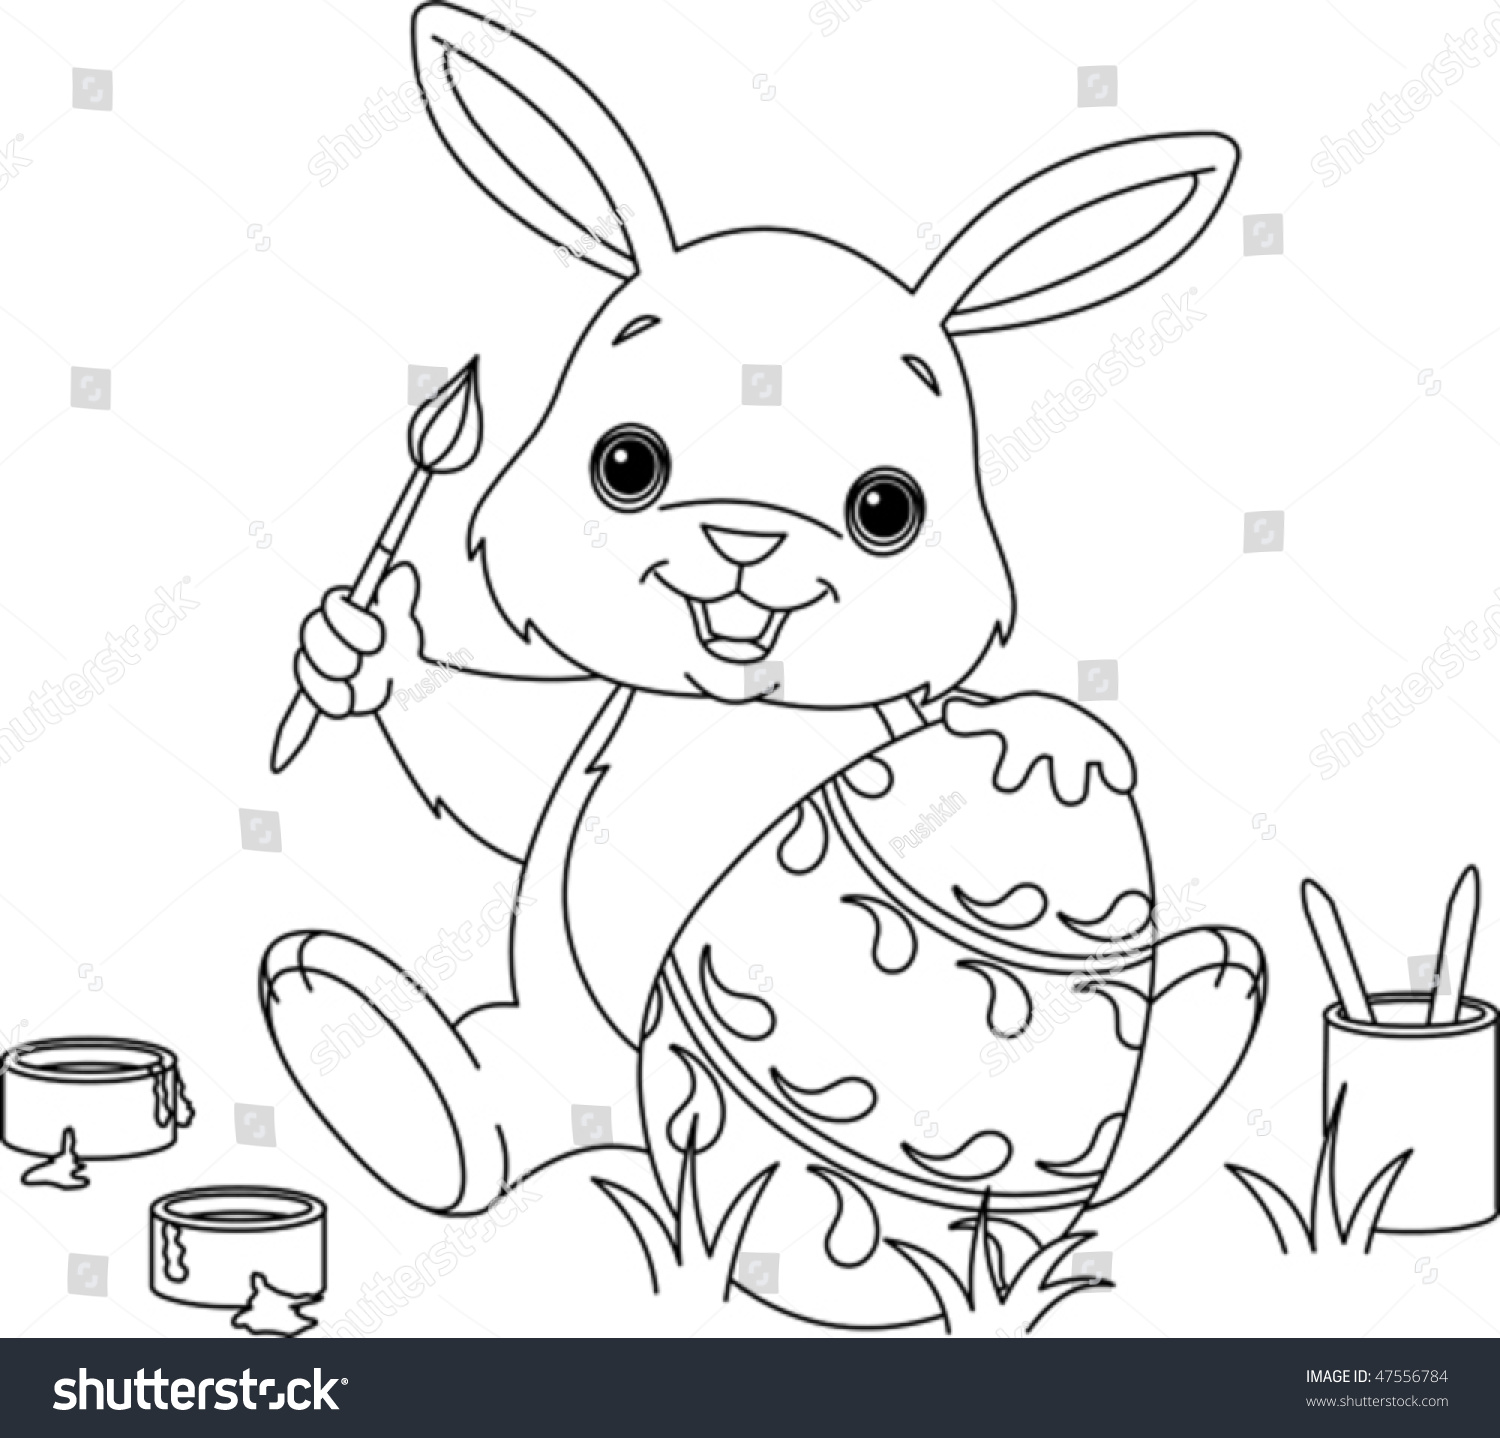 Coloring Page Easter Bunny Painting Egg Stock Vector